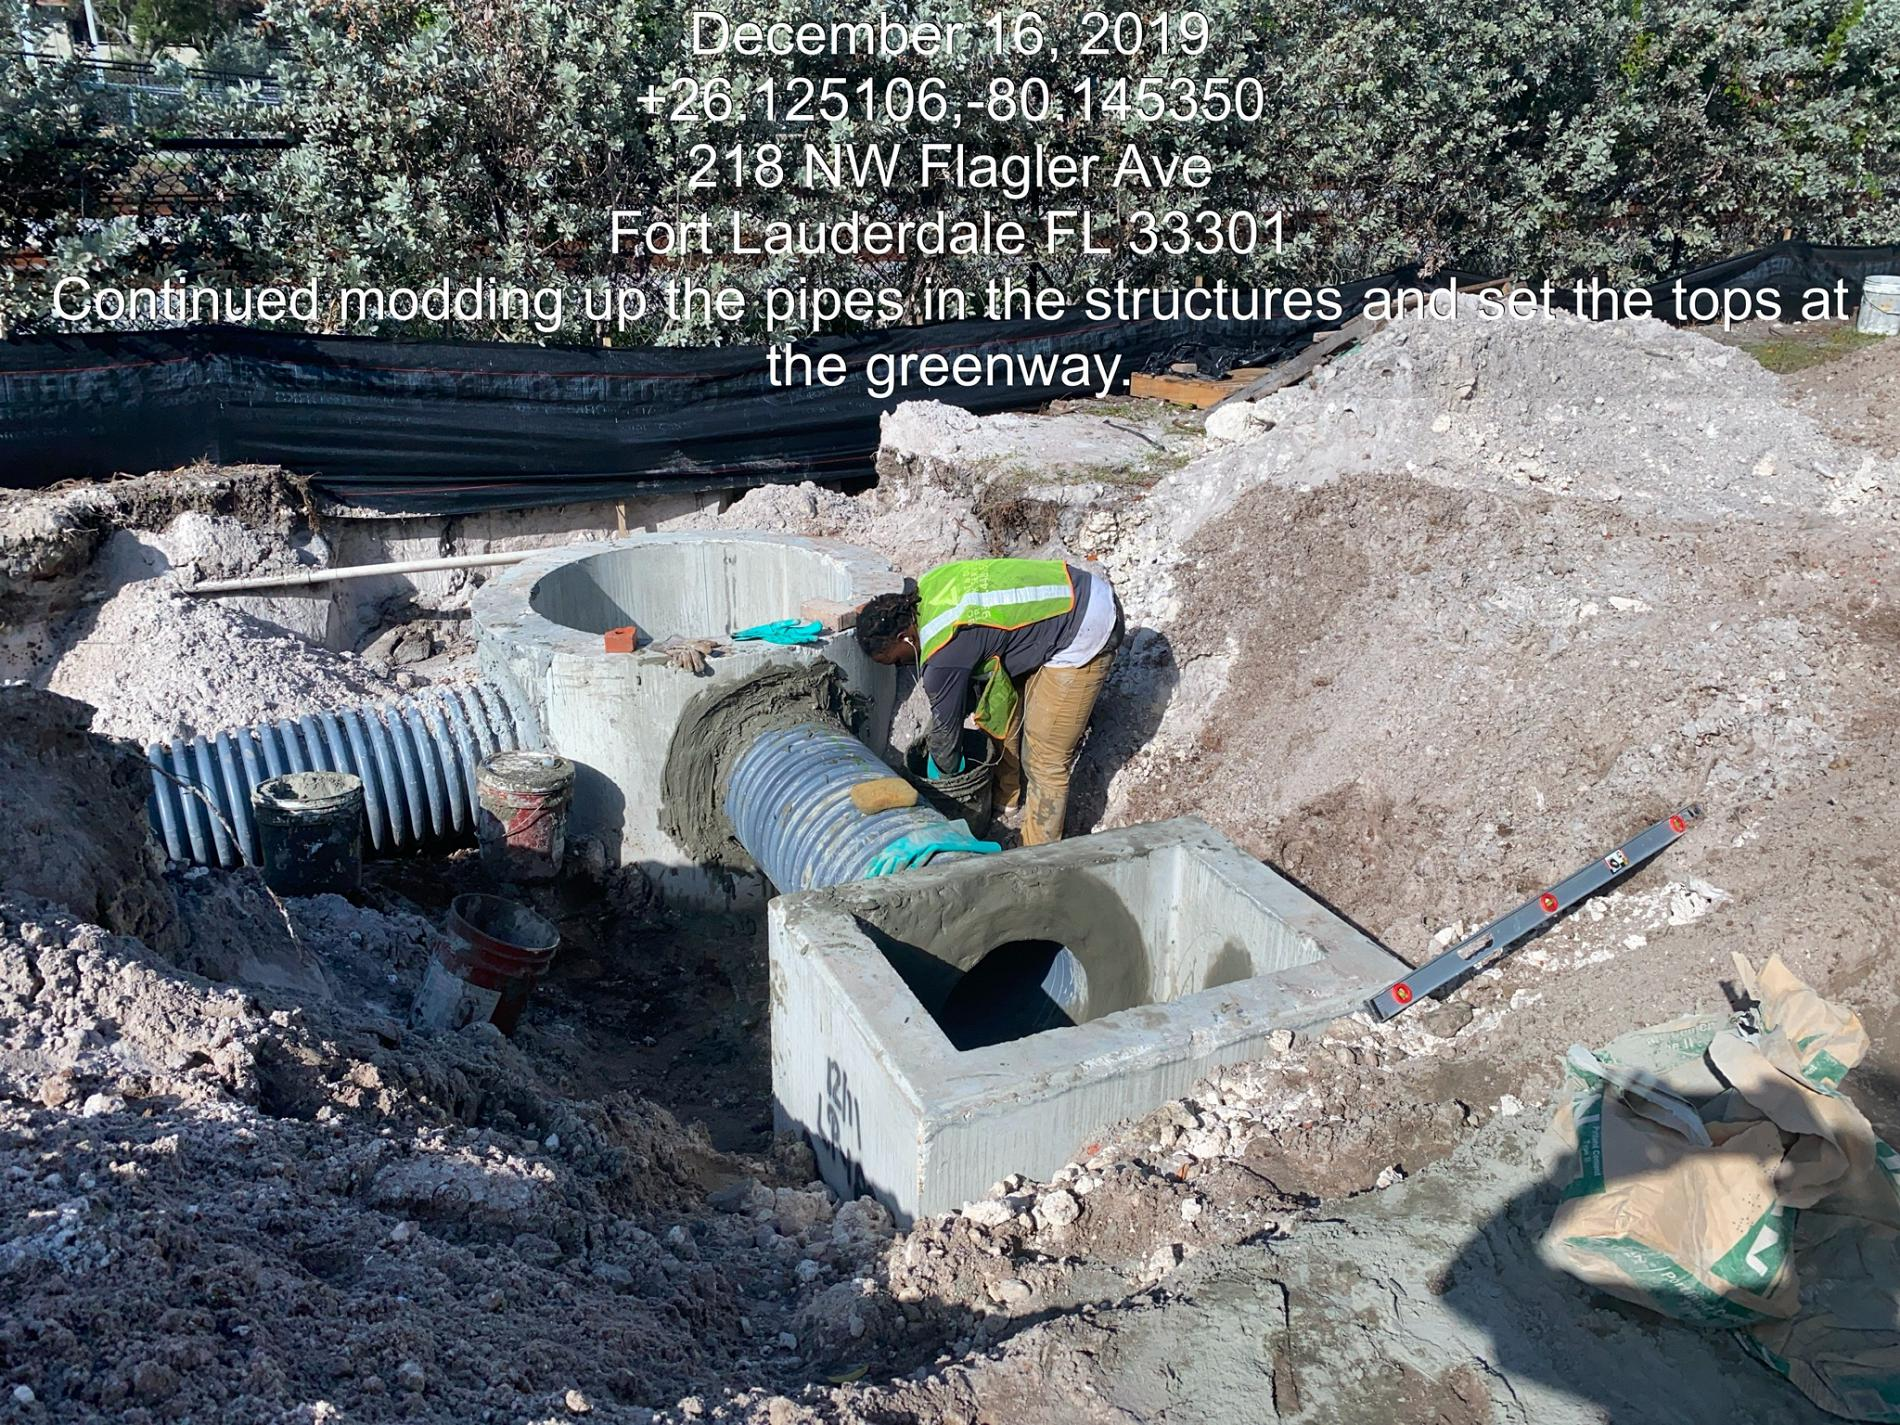 FFDA1777-DEA5-4177-94F1-1059ABA0EEED.jpeg: Installation of drainage structures and pipe on Flagler Ave.